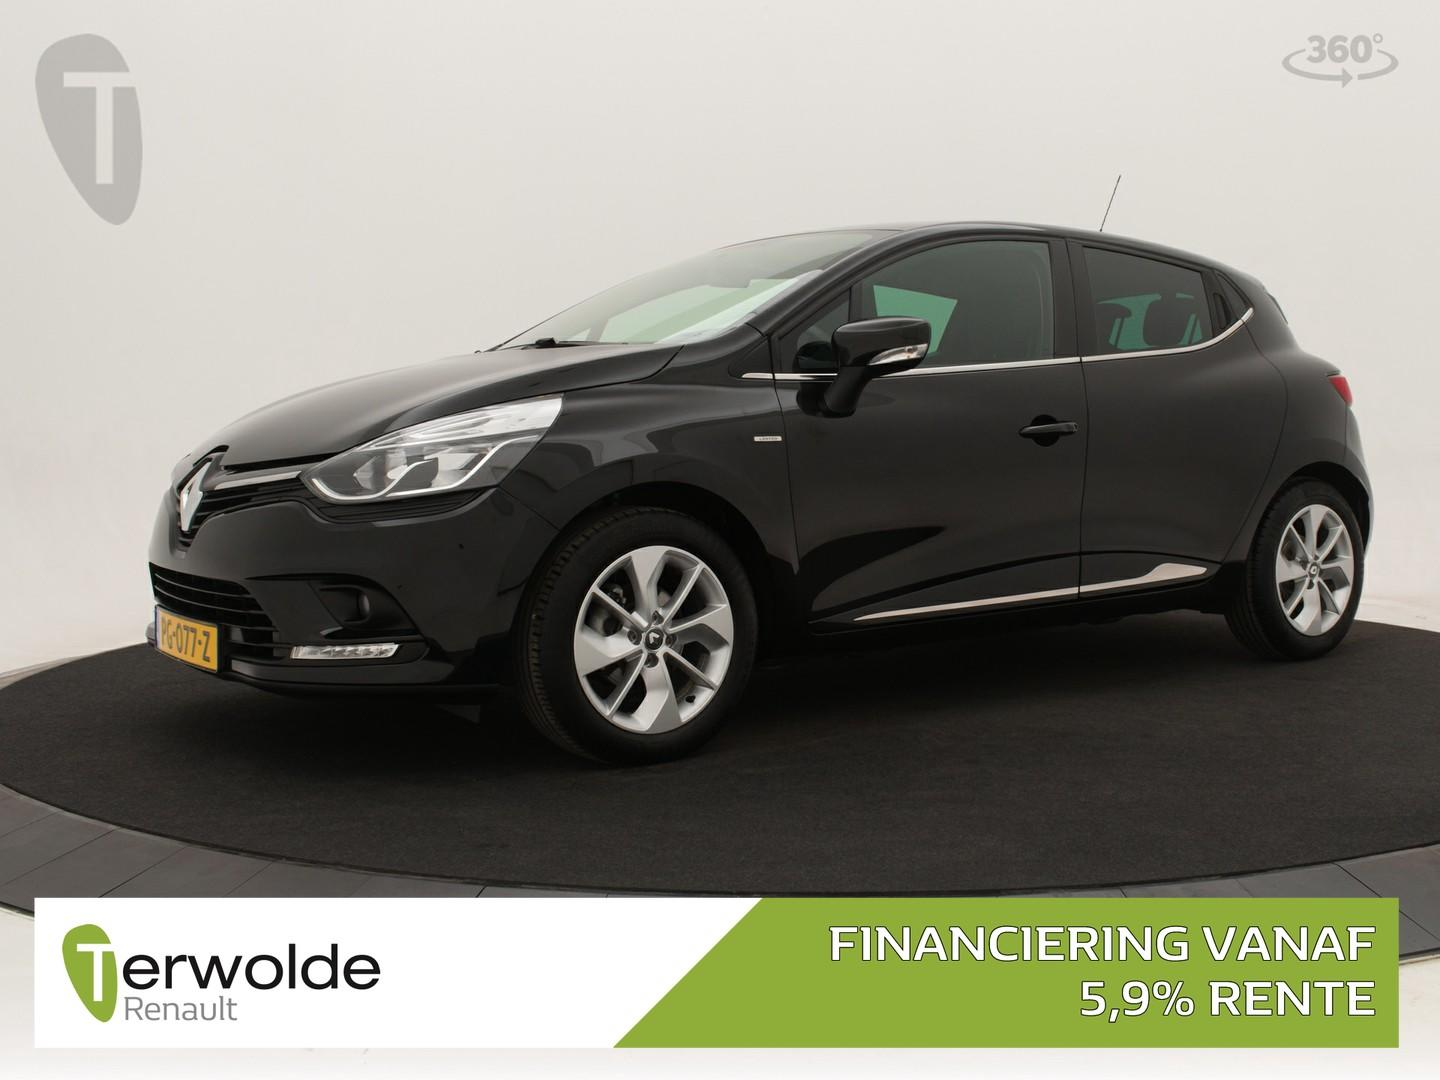 Renault Clio Tce 90 pk limited